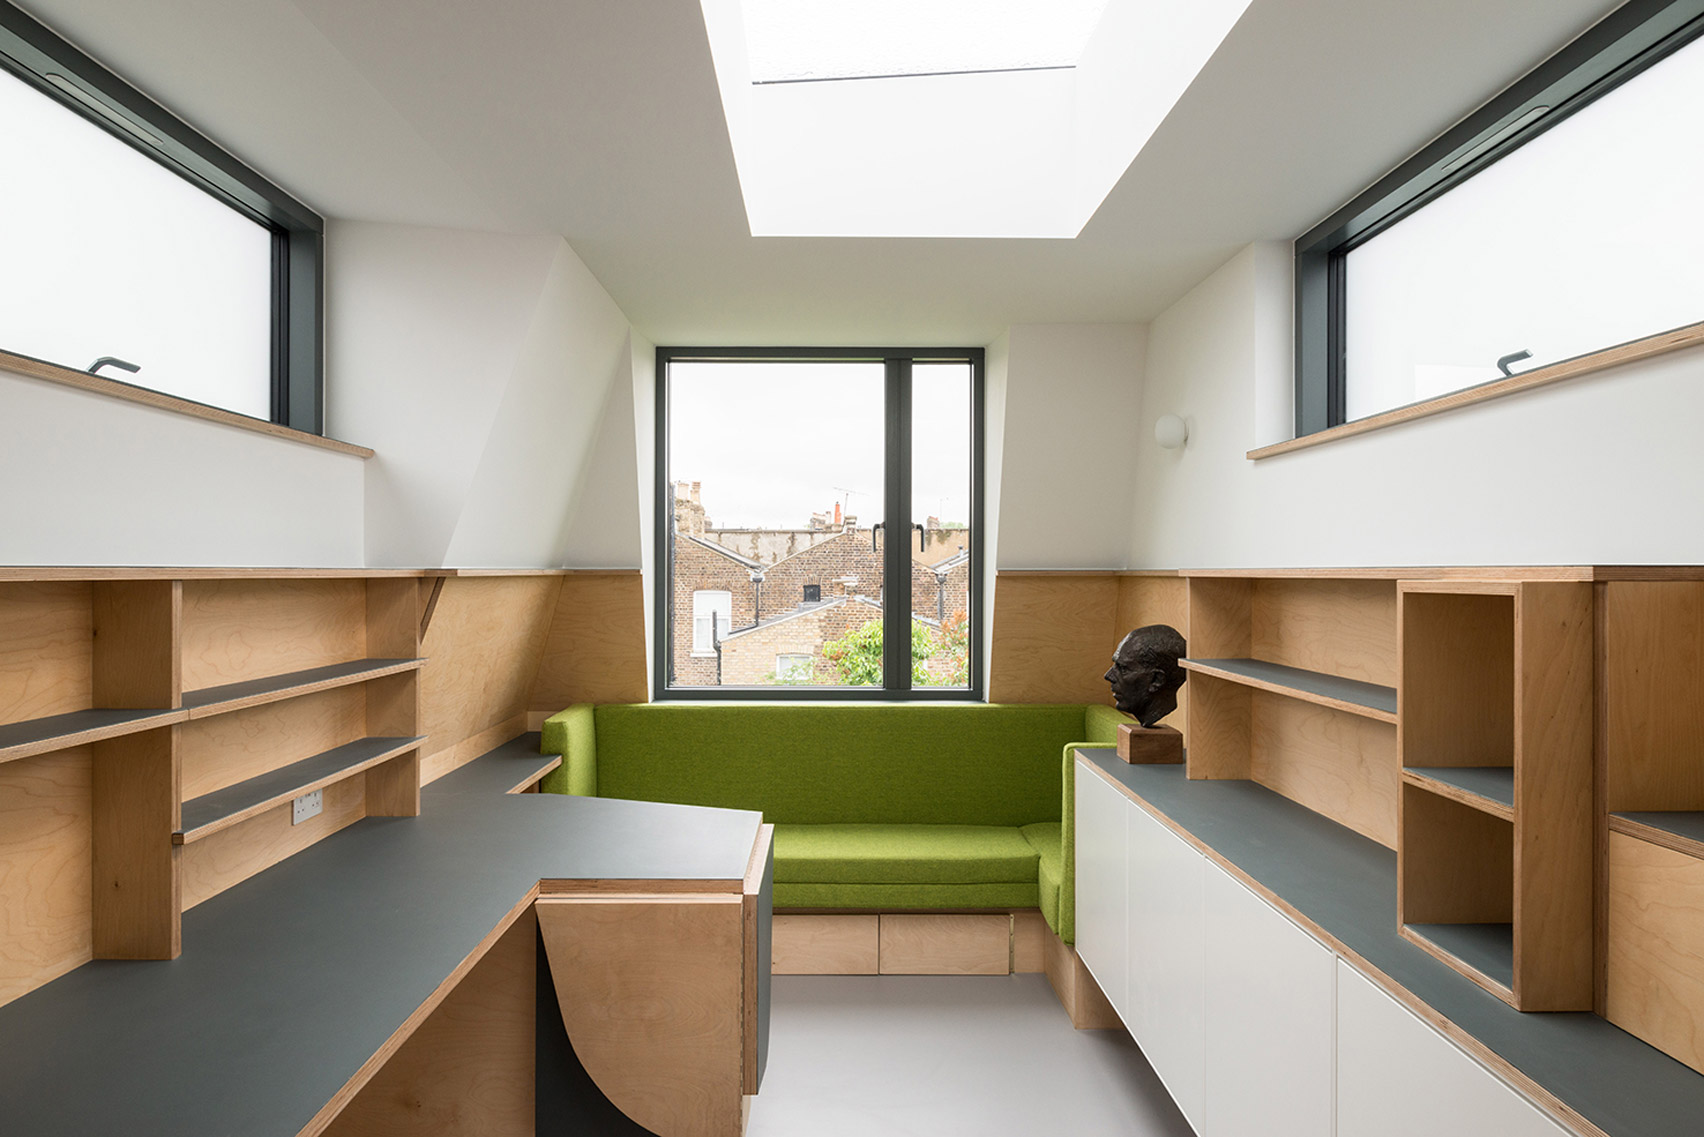 Canal boat interiors inspire space-efficient extension to London house by Archmongers